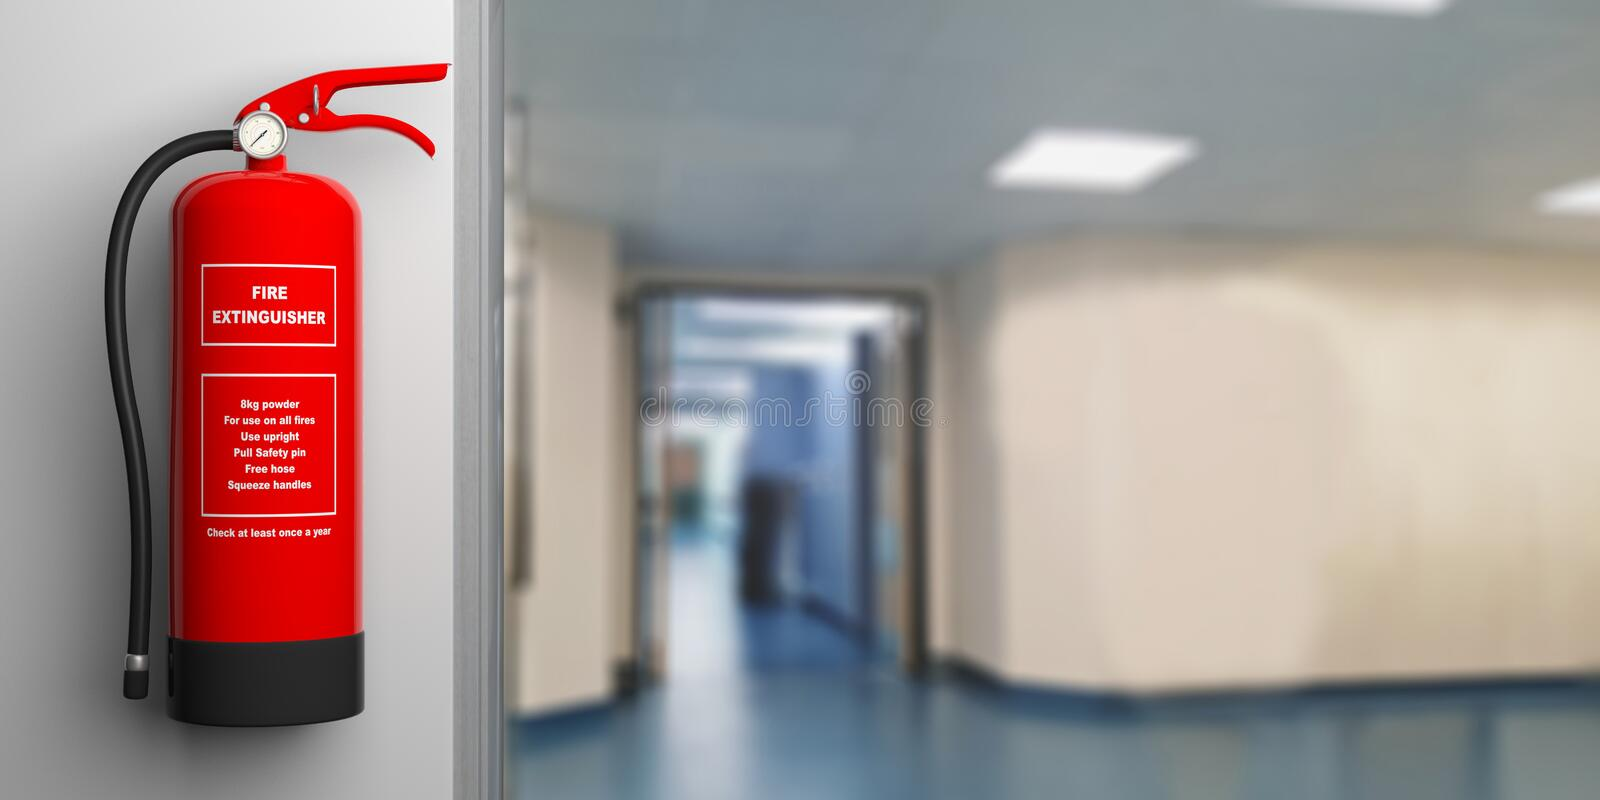 Fire extinguisher on a wall, blur hospital corridor background. 3d illustration. Fire safety, Red fire extinguisher on wall, blur hospital corridor background vector illustration